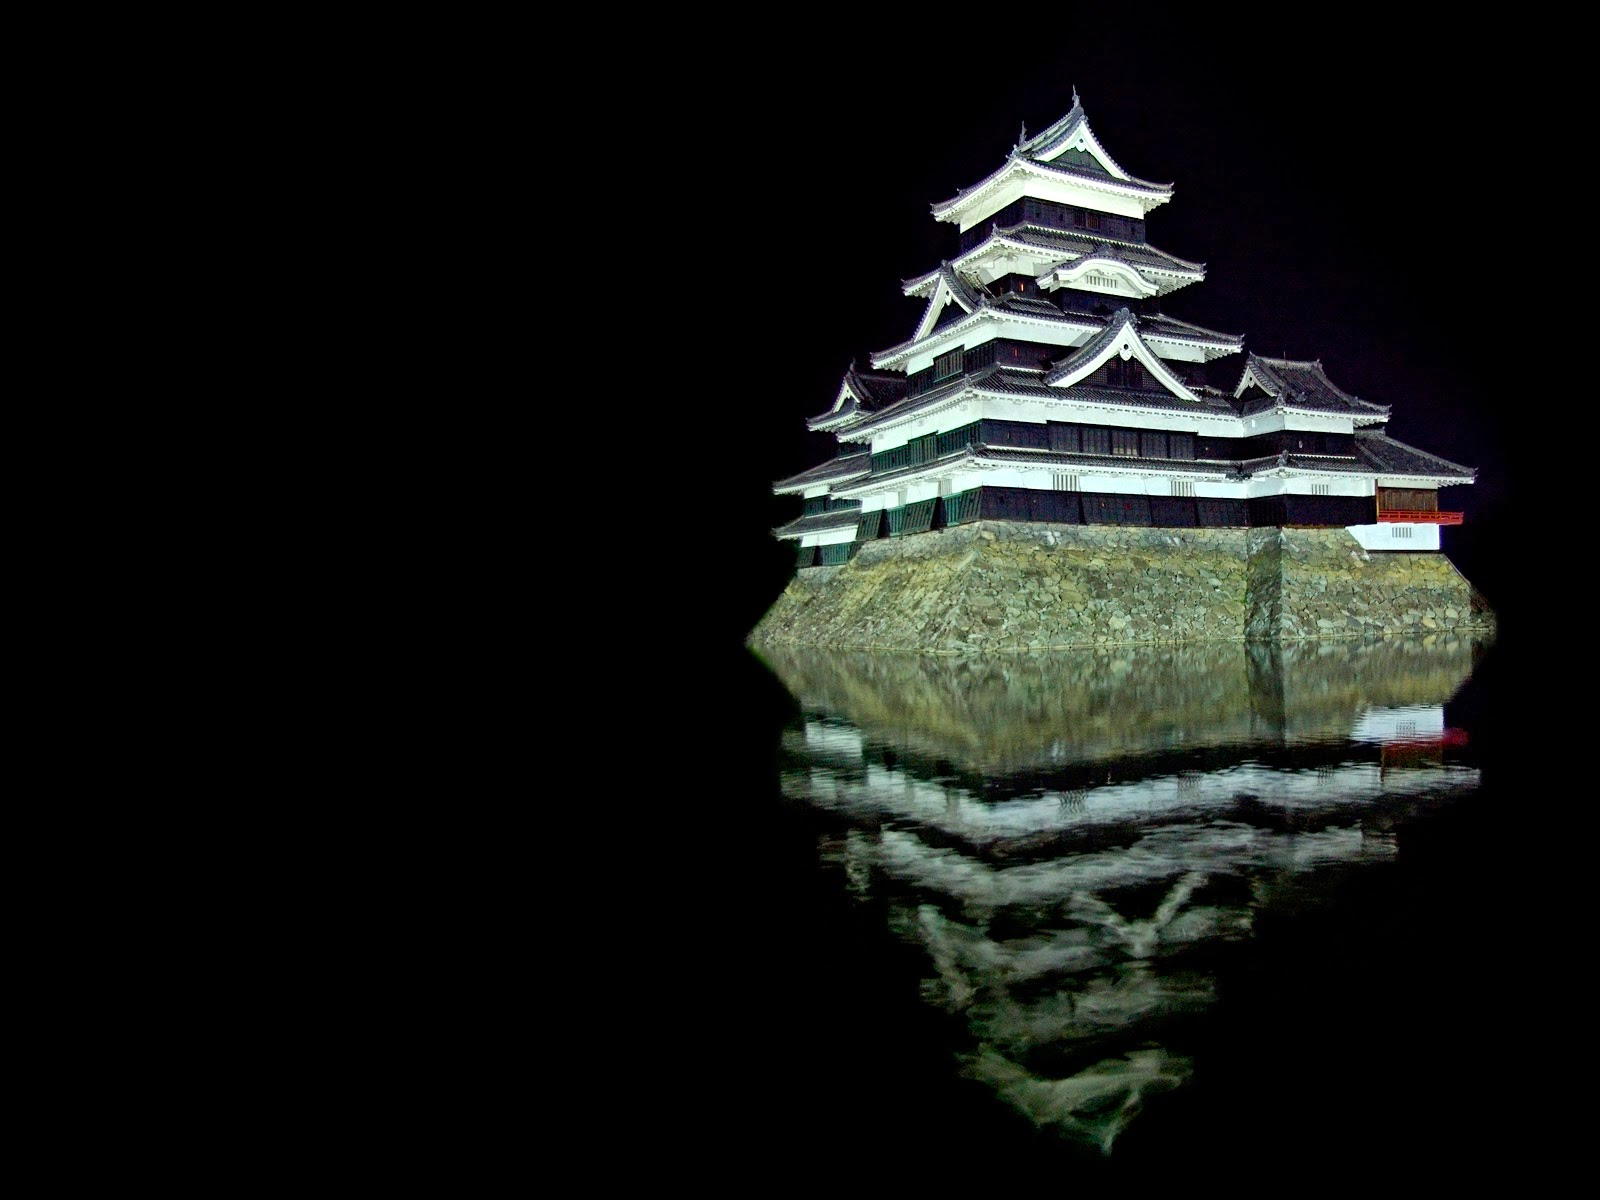 Matsumoto Castle at night in Nagano